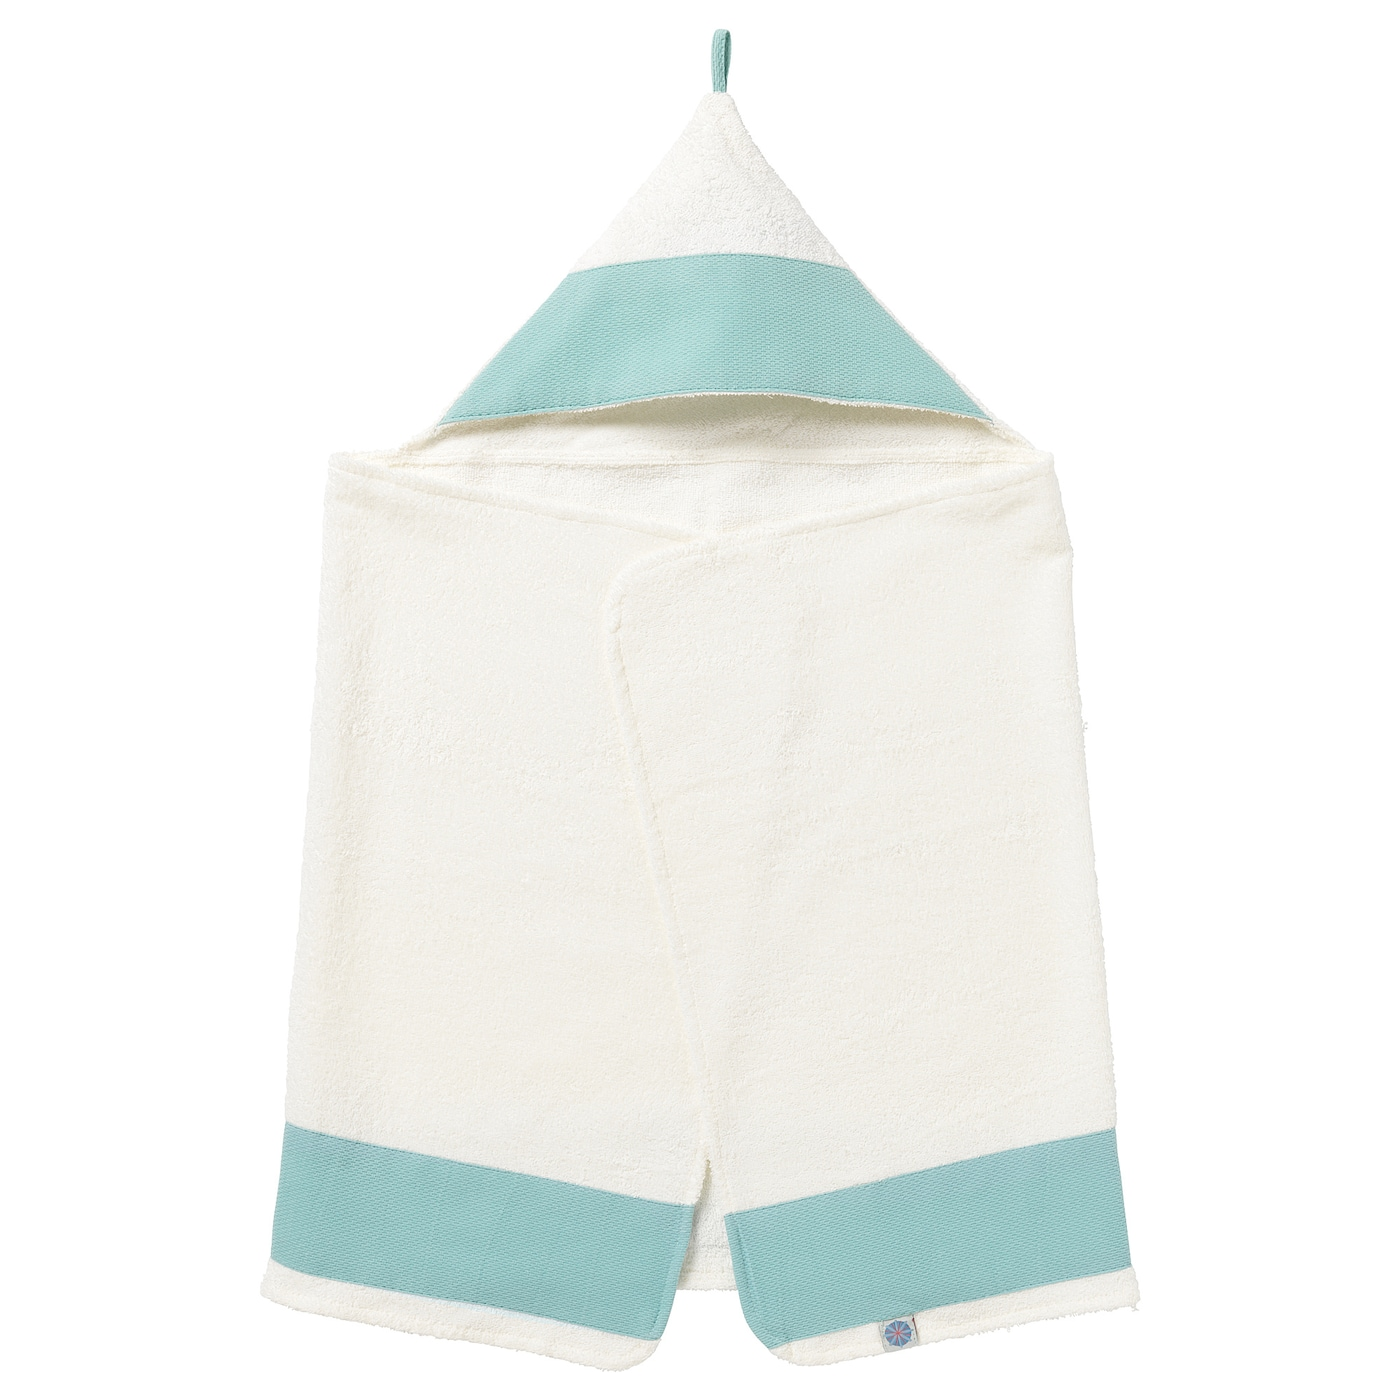 IKEA TILLGIVEN baby towel with hood The loop makes it easy to hang on a knob or hook.